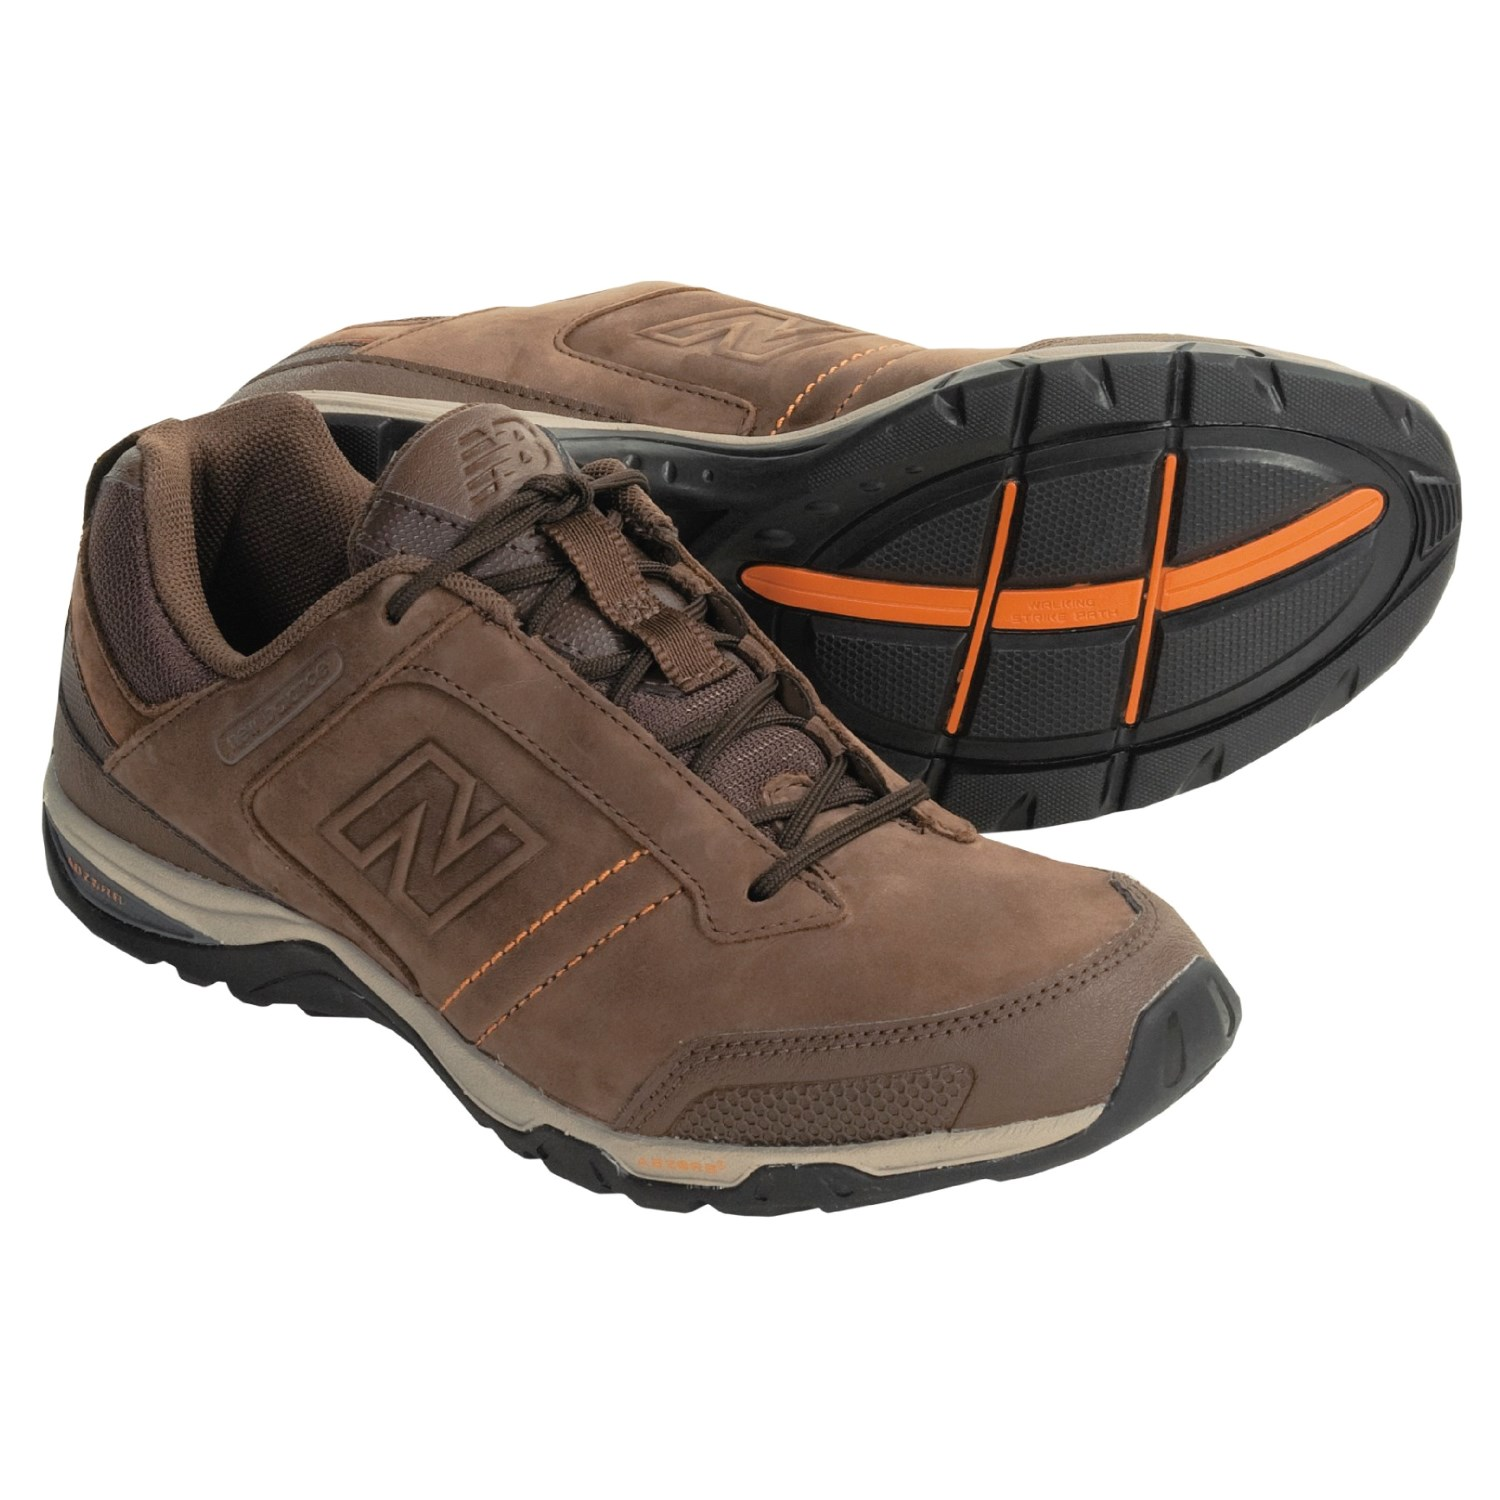 New Balance Mens Brown Walking Philly Diet Doctor Dr